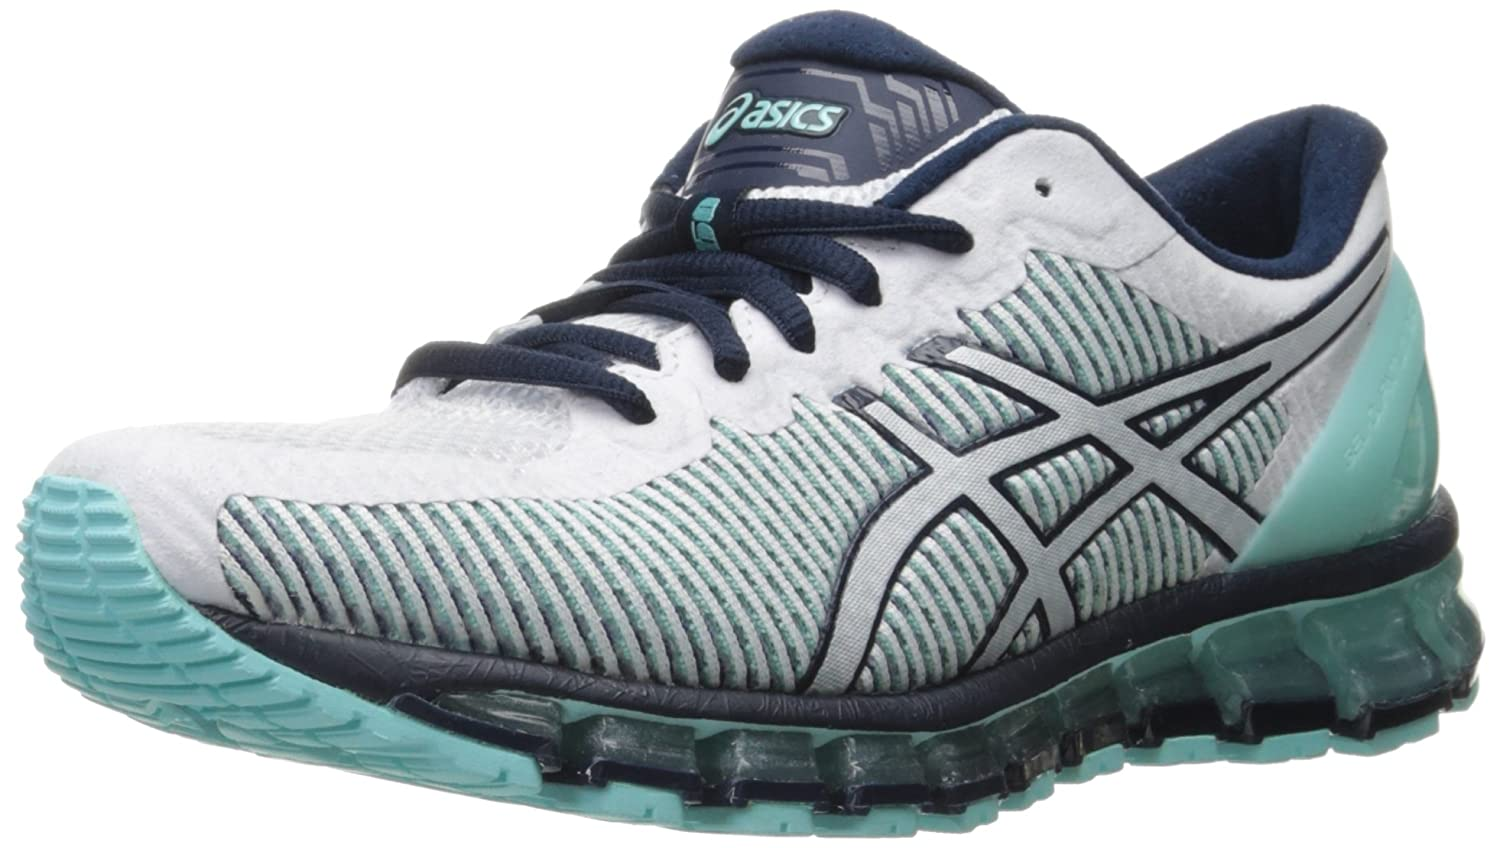 ASICS Women's Gel-Quantum 360 cm Running Shoe B017TFRQ5A 10 B(M) US|Aruba Blue/White/Dark Navy